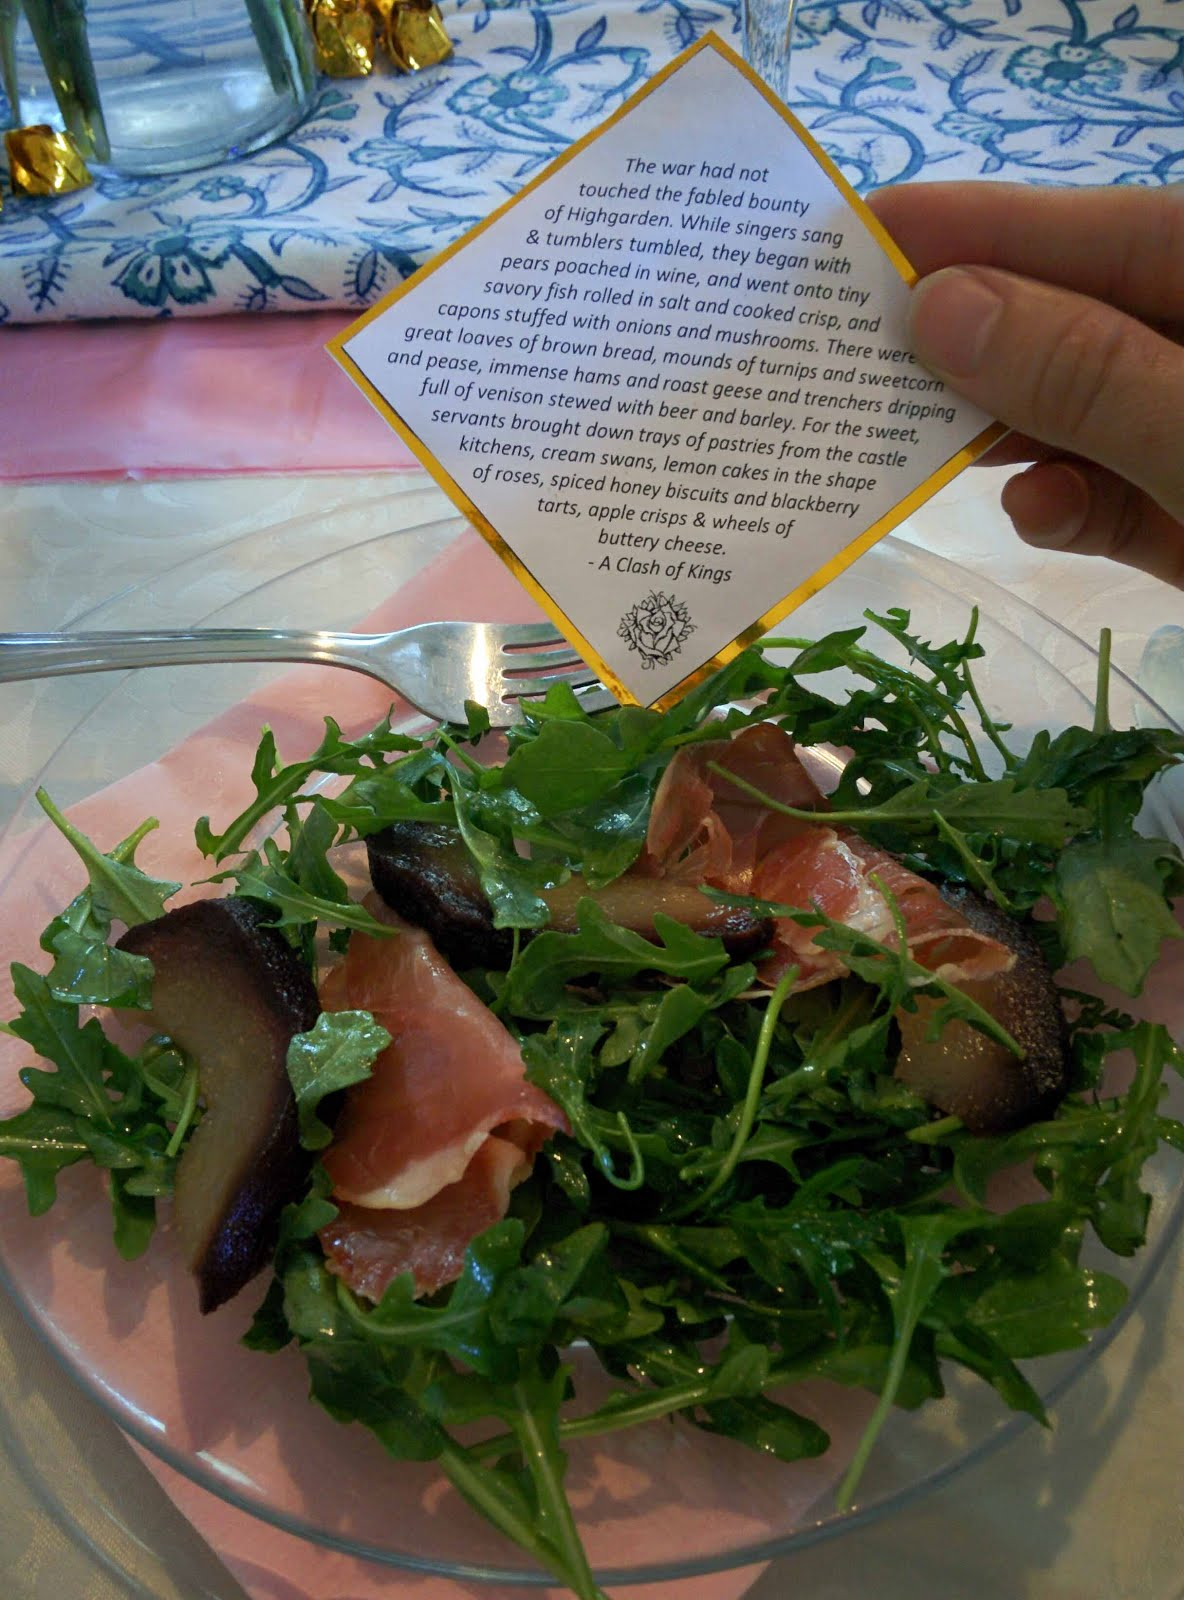 Game of Thrones: Pears poached in wine, served with prosciutto and arugula.